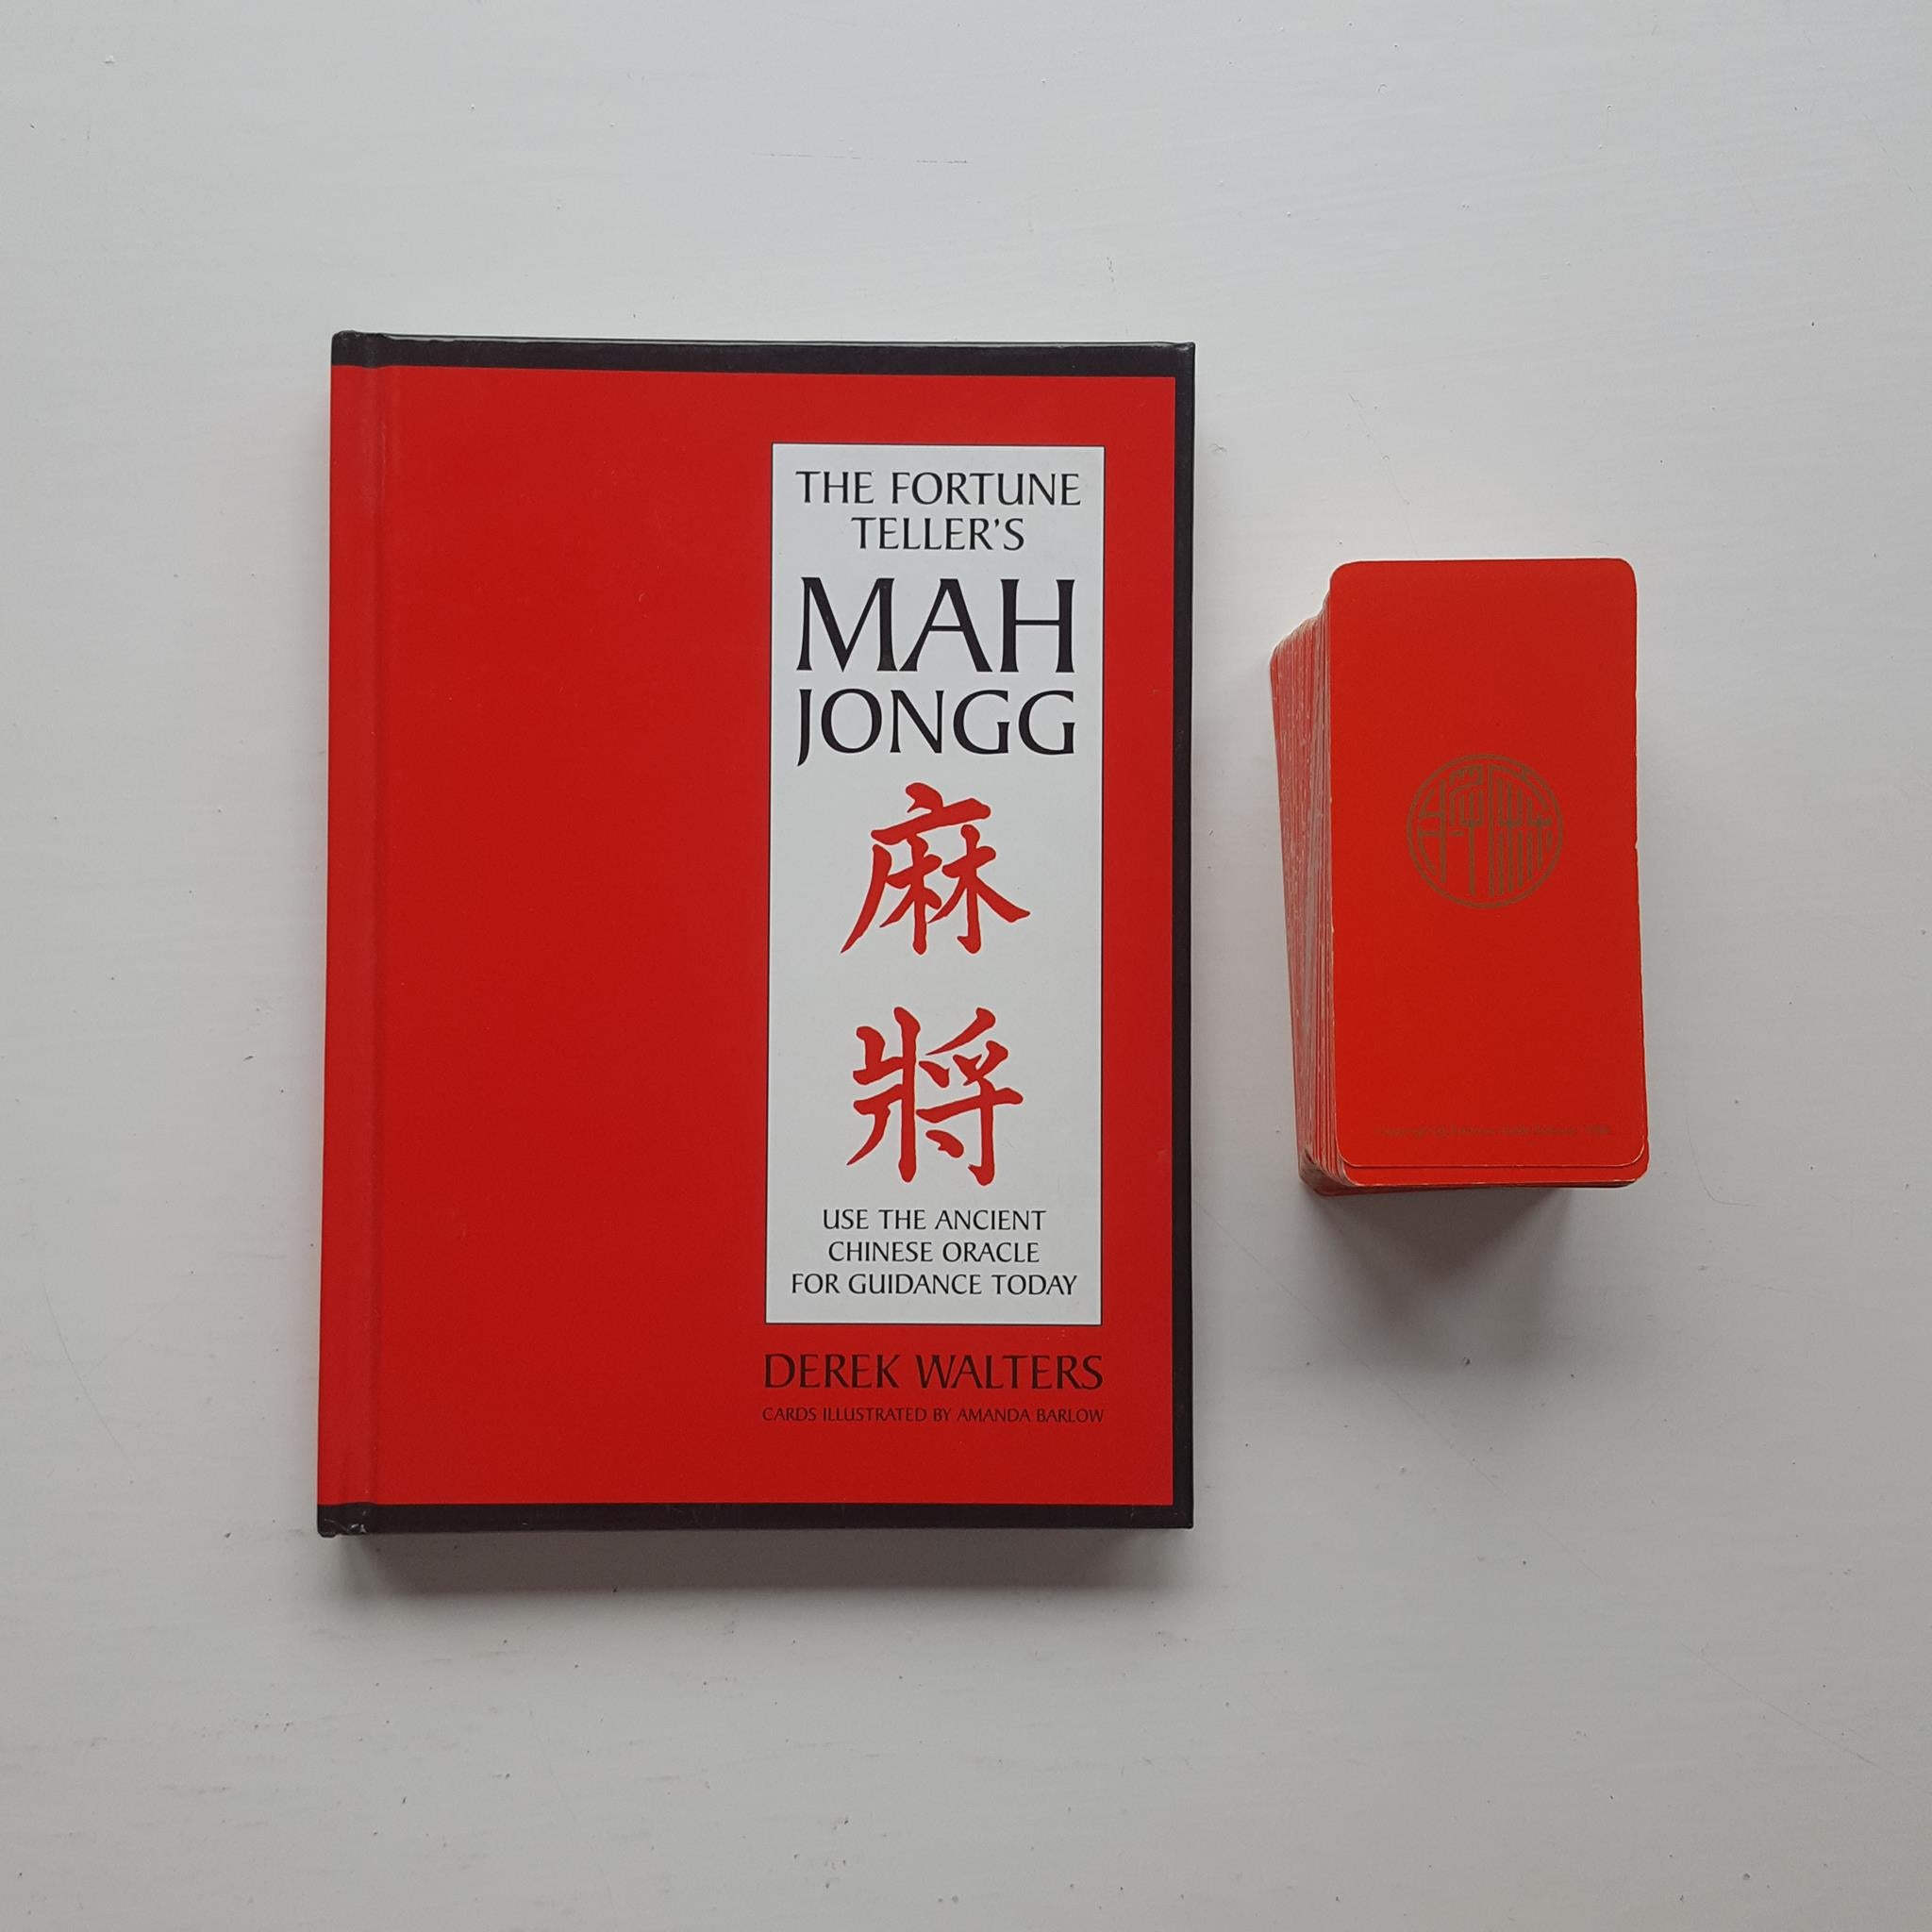 The Fortune Teller's Mah Jongg by Derek Walters